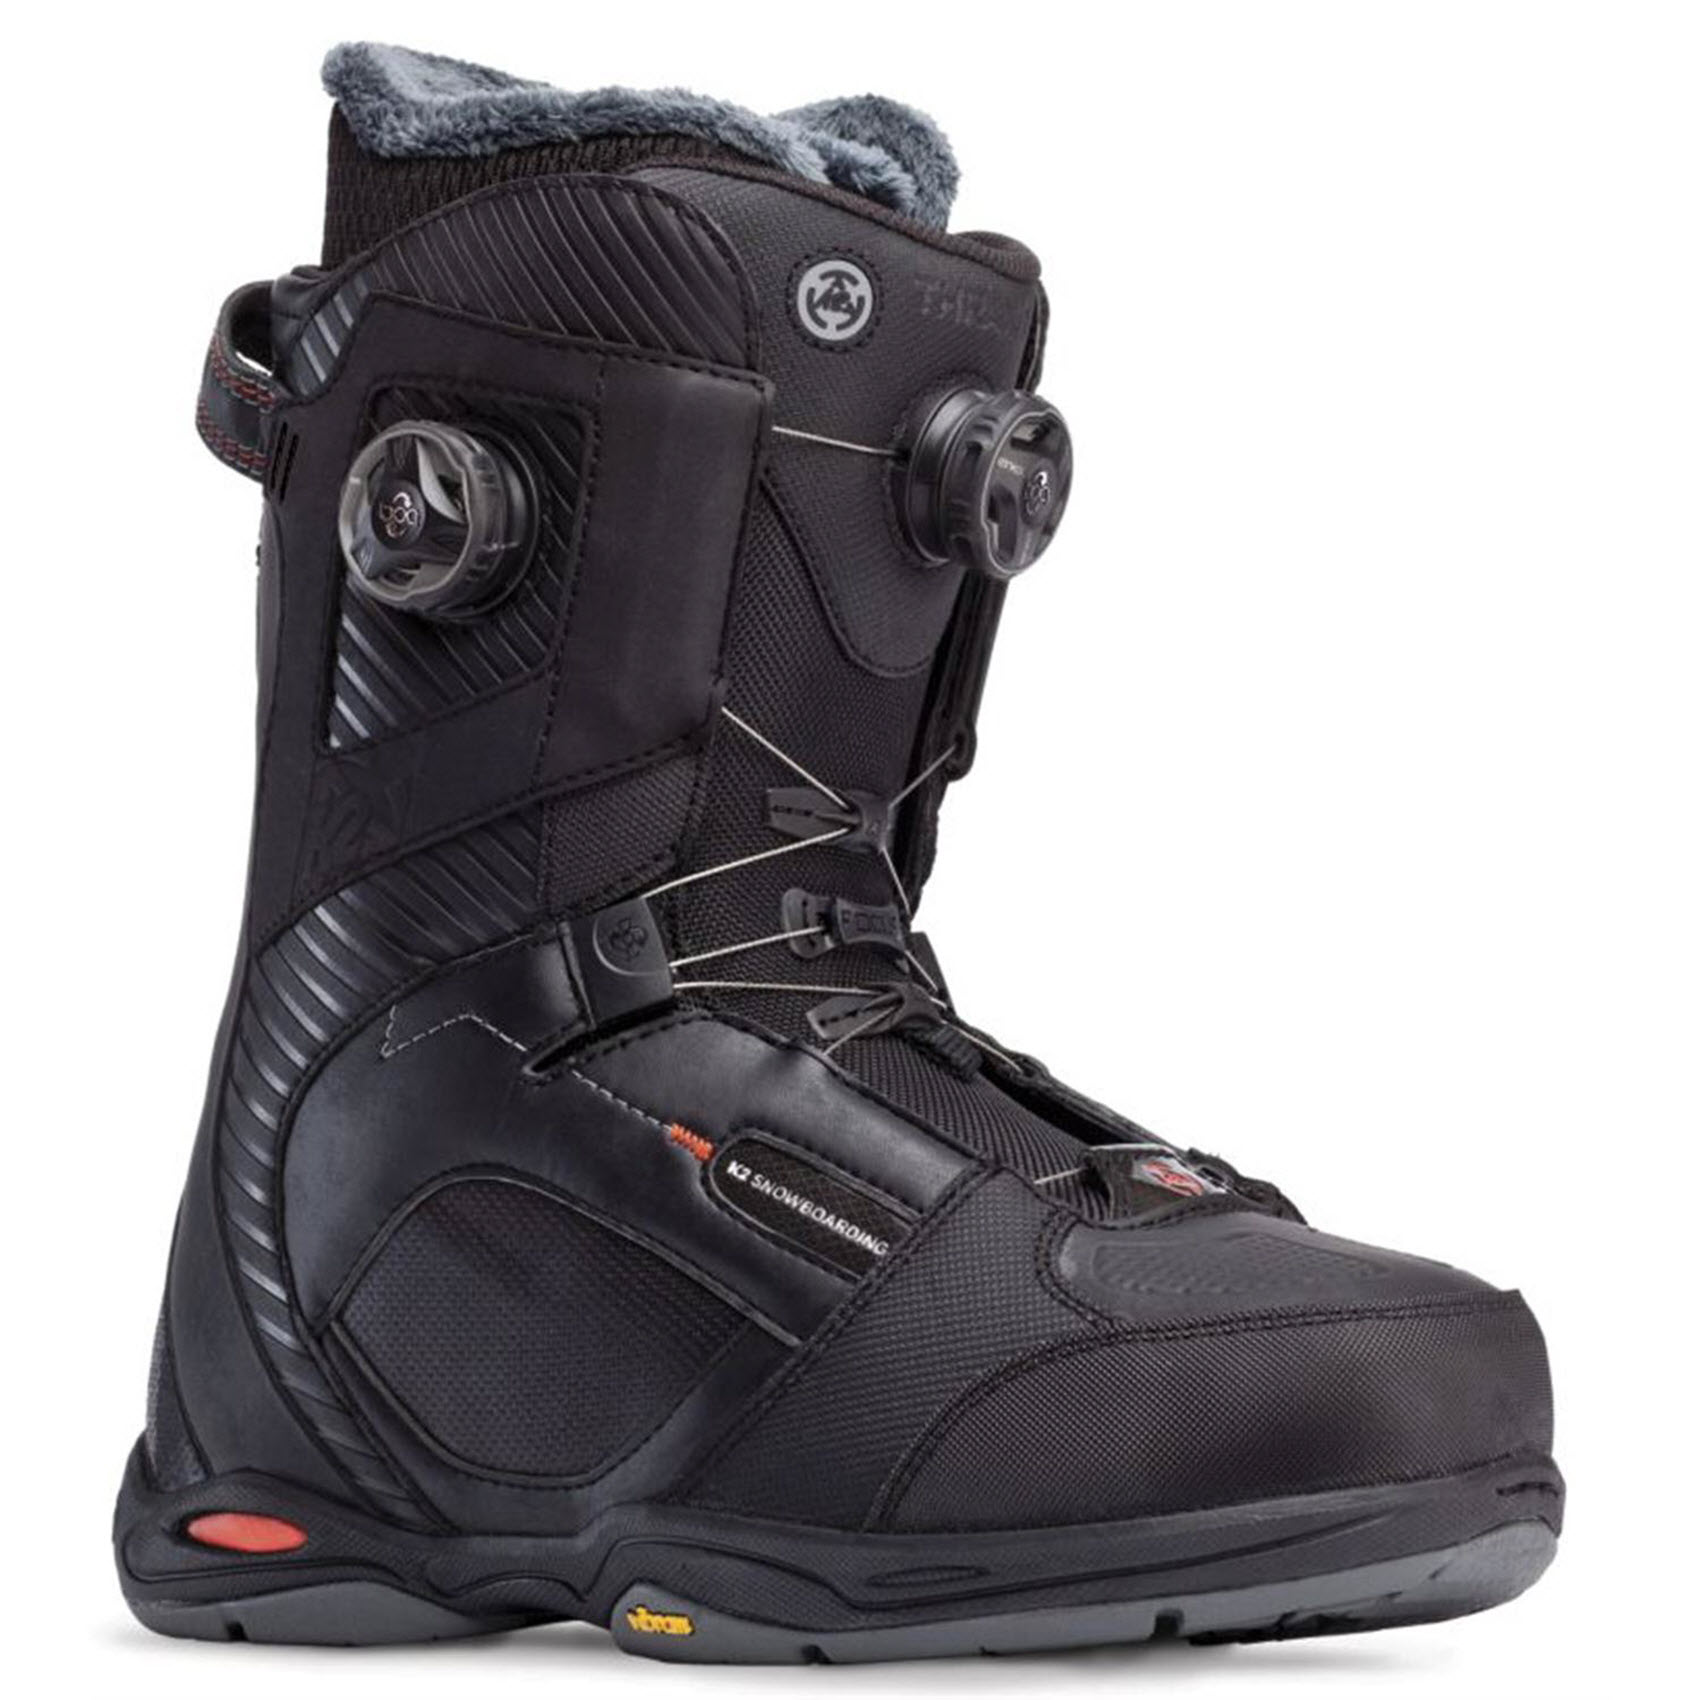 k2 thraxis boa mens snowboard boots new black 2015 freeride ebay. Black Bedroom Furniture Sets. Home Design Ideas